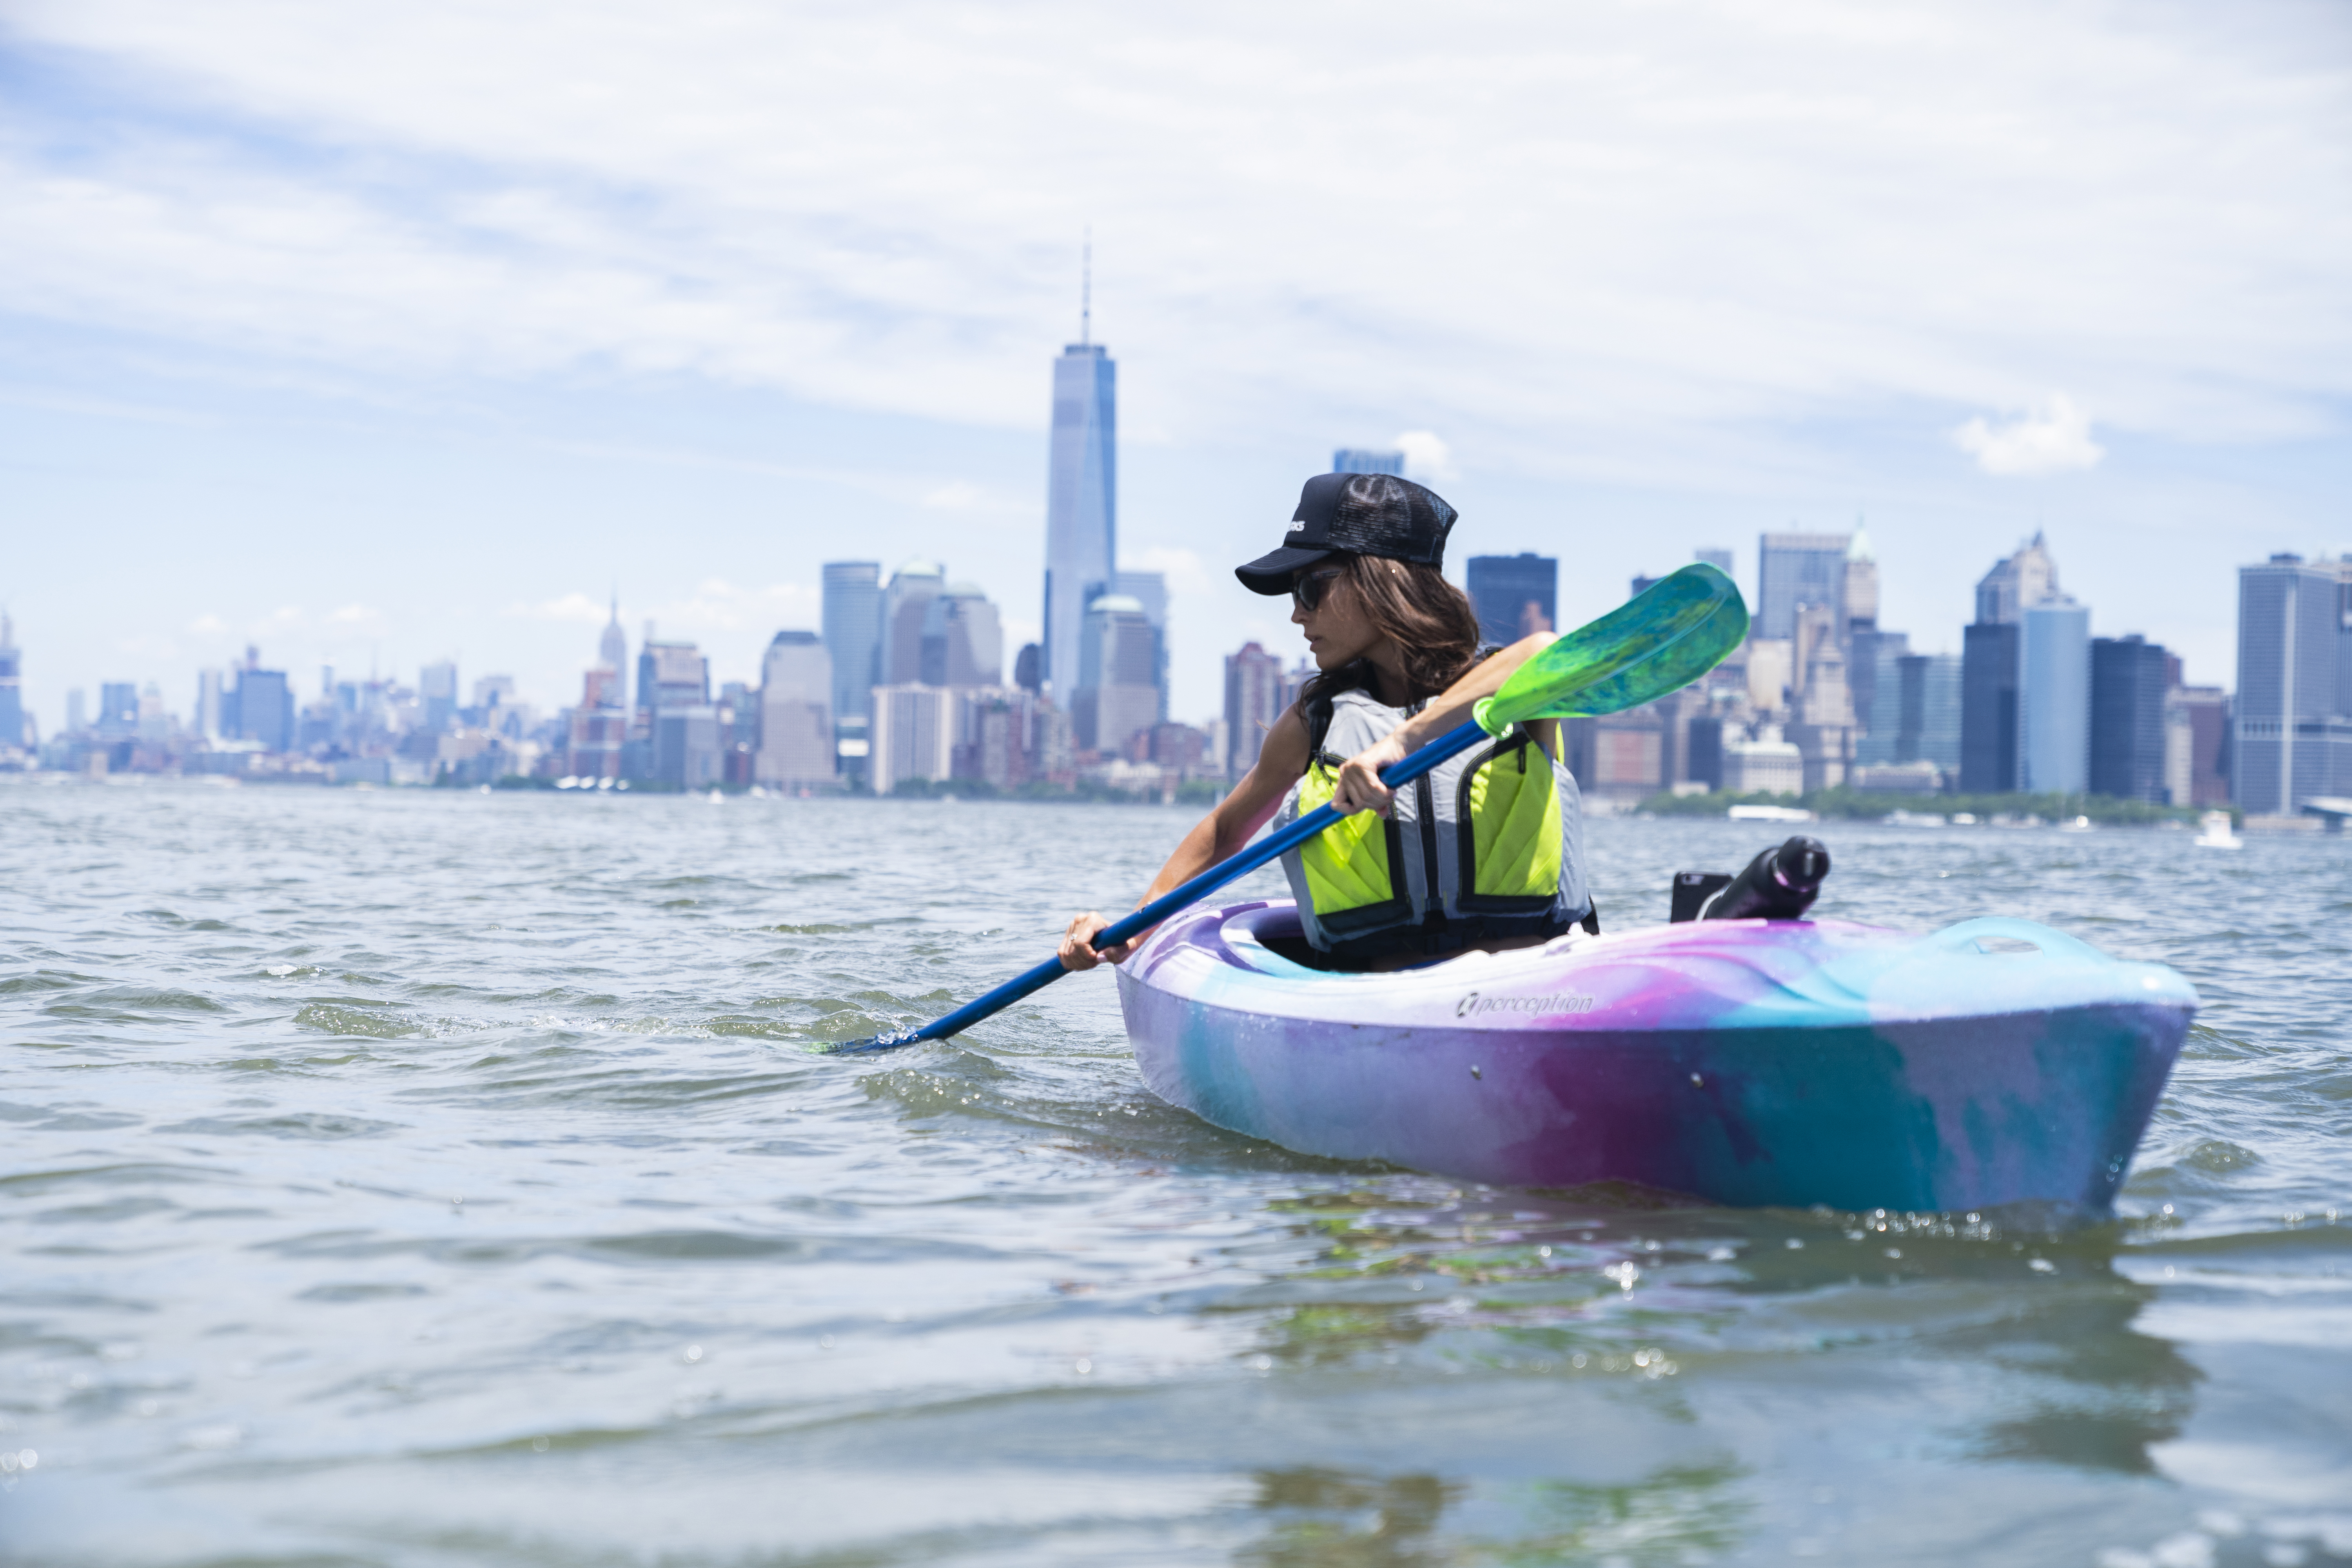 Confluence Outdoor | Leading Manufacturer of Kayaks, Canoes